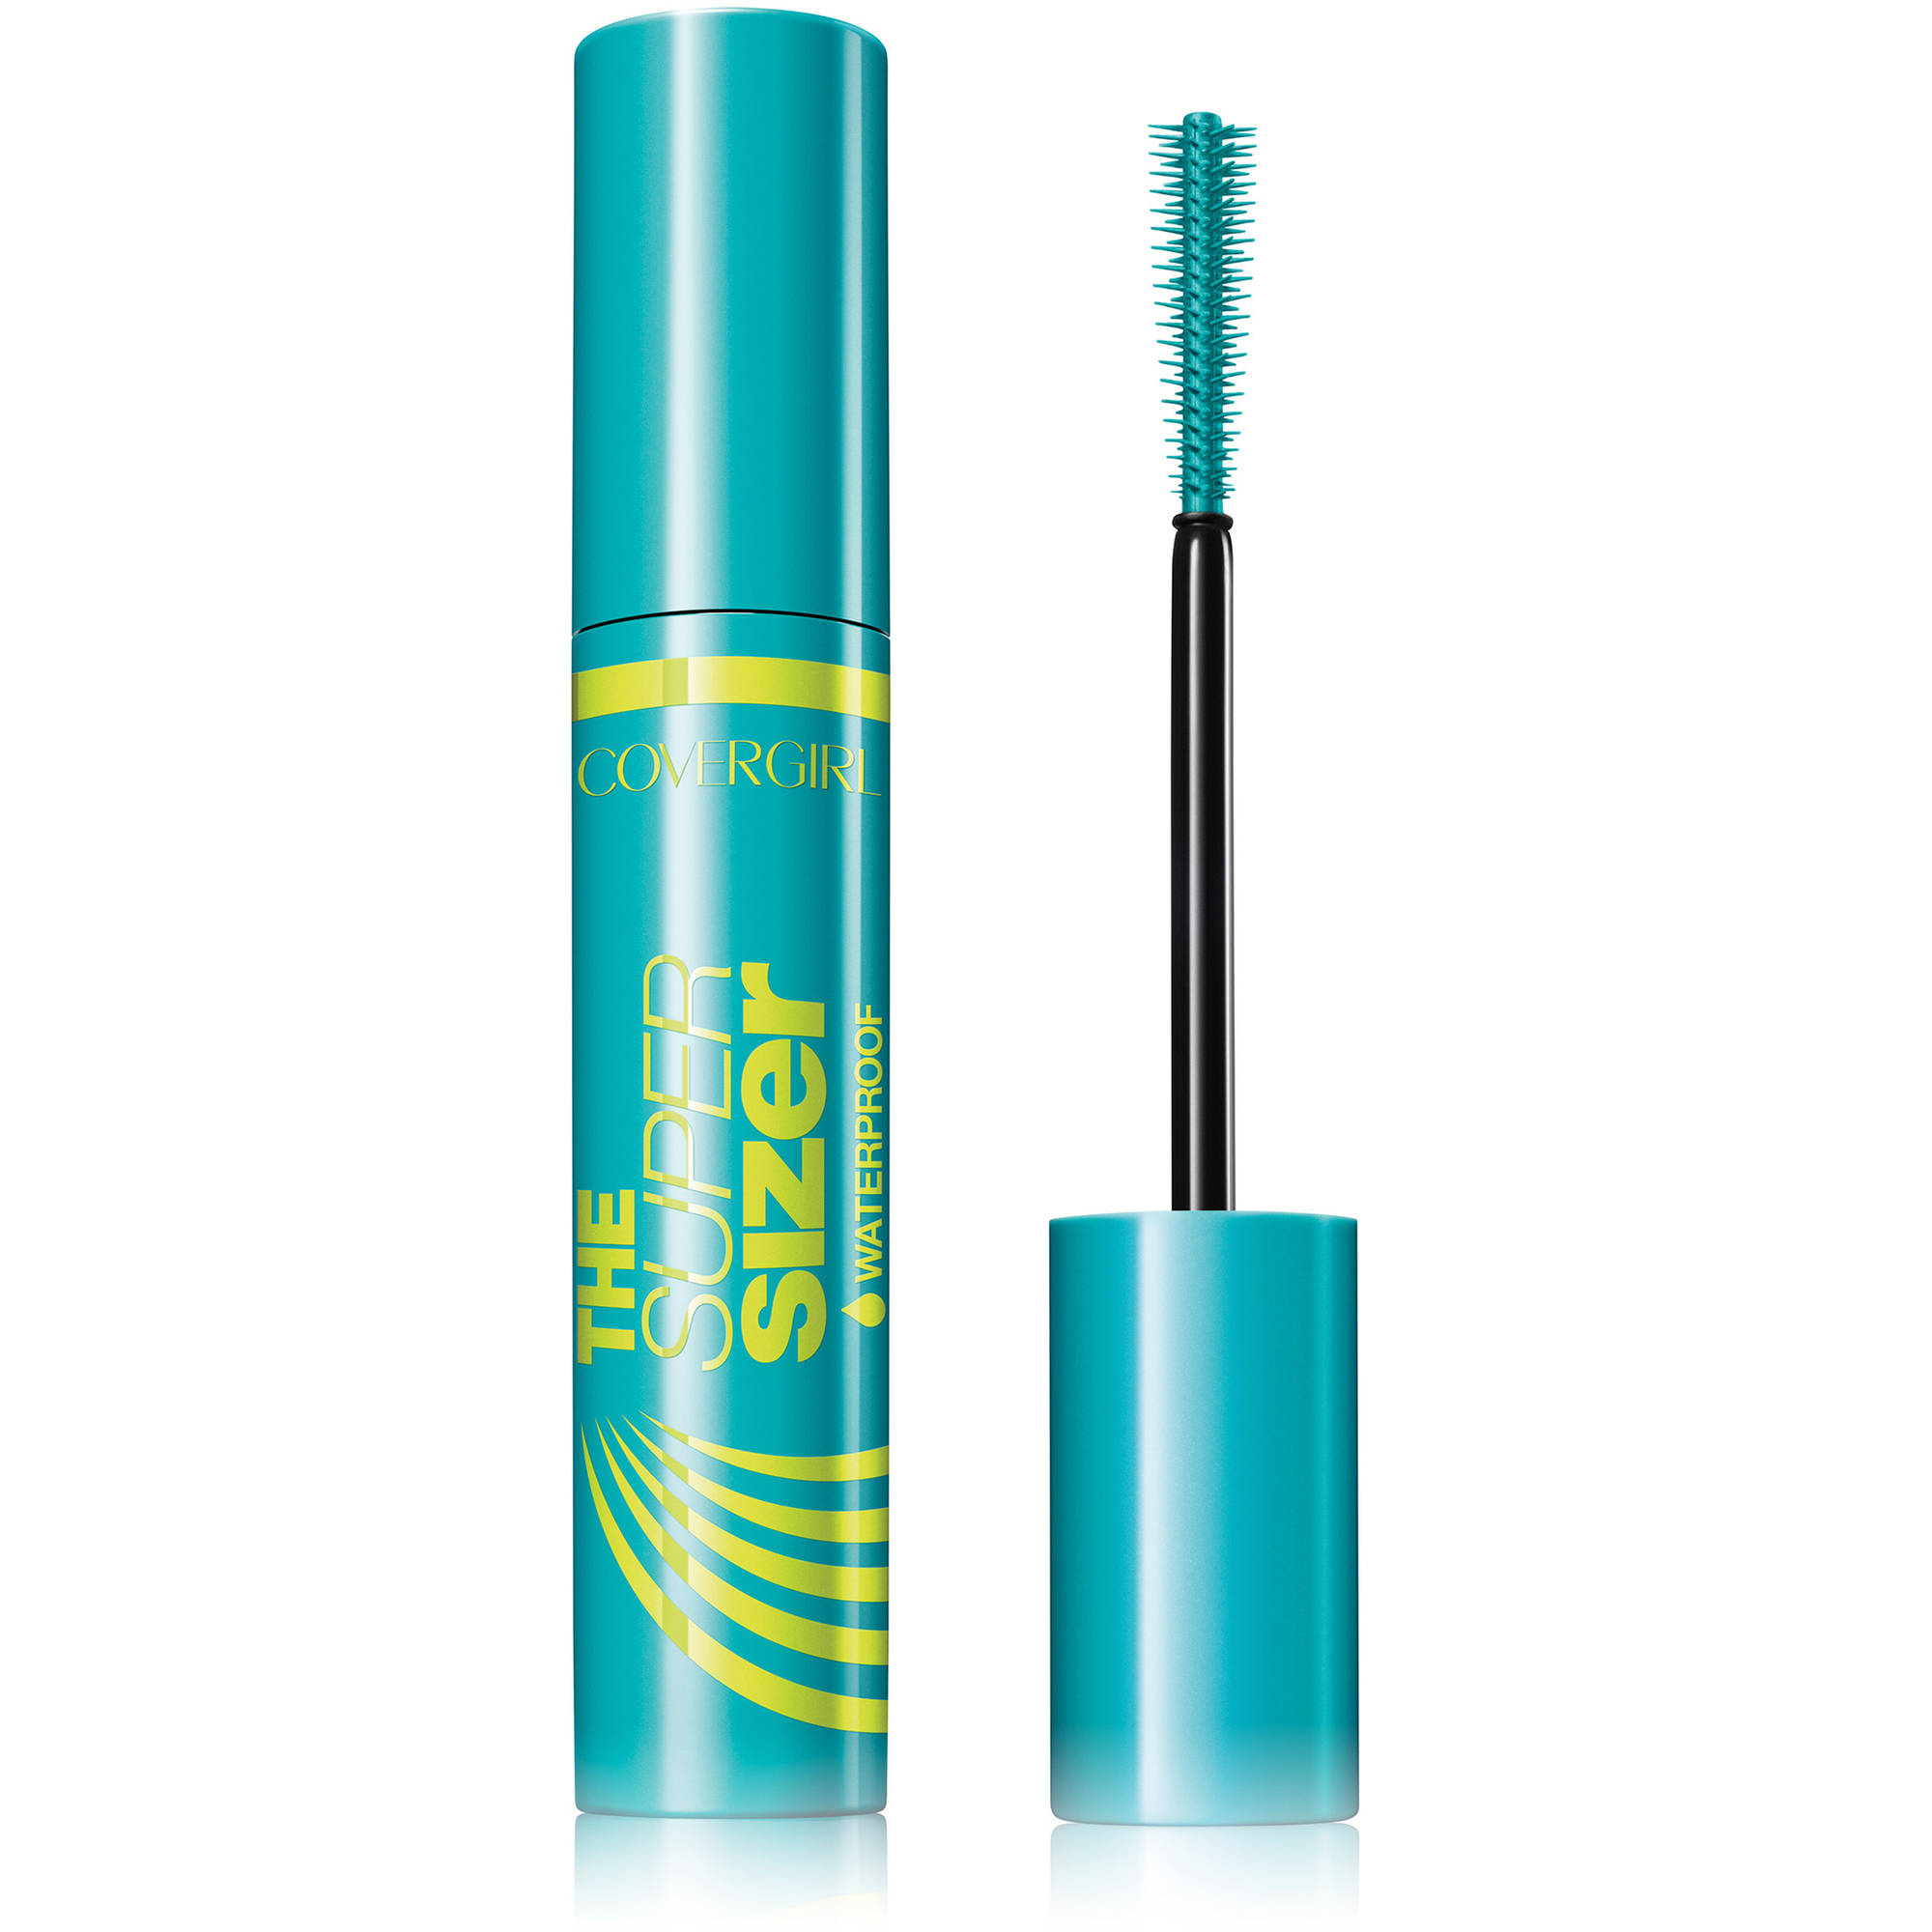 COVERGIRL The Super Sizer by LashBlast Waterproof Mascara, Very Black 825, .4 fl oz